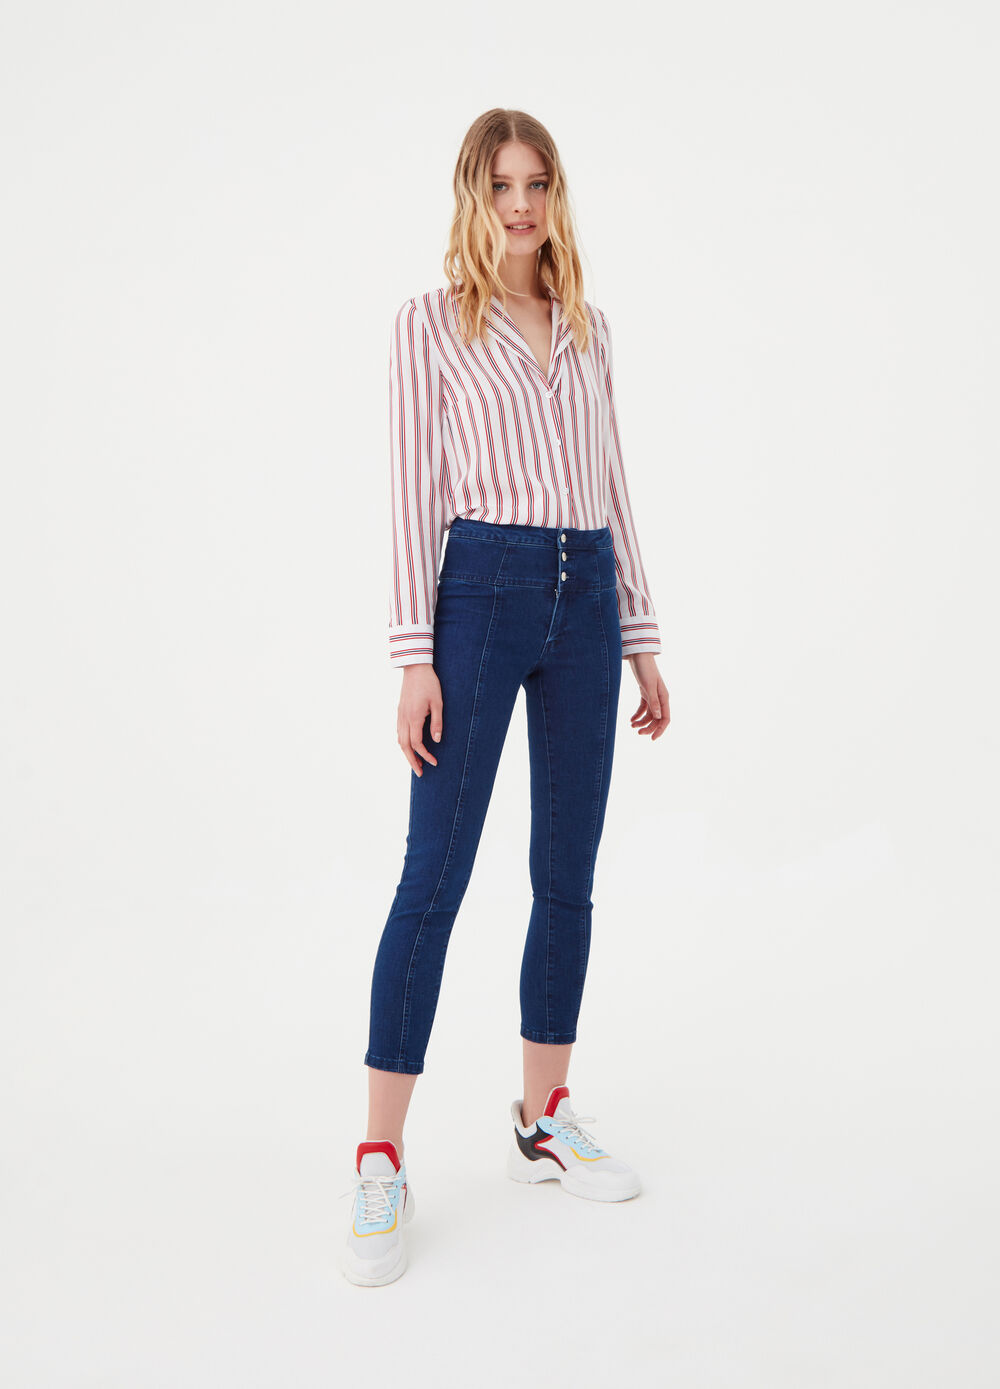 High-waist, skinny fit stretch jeans